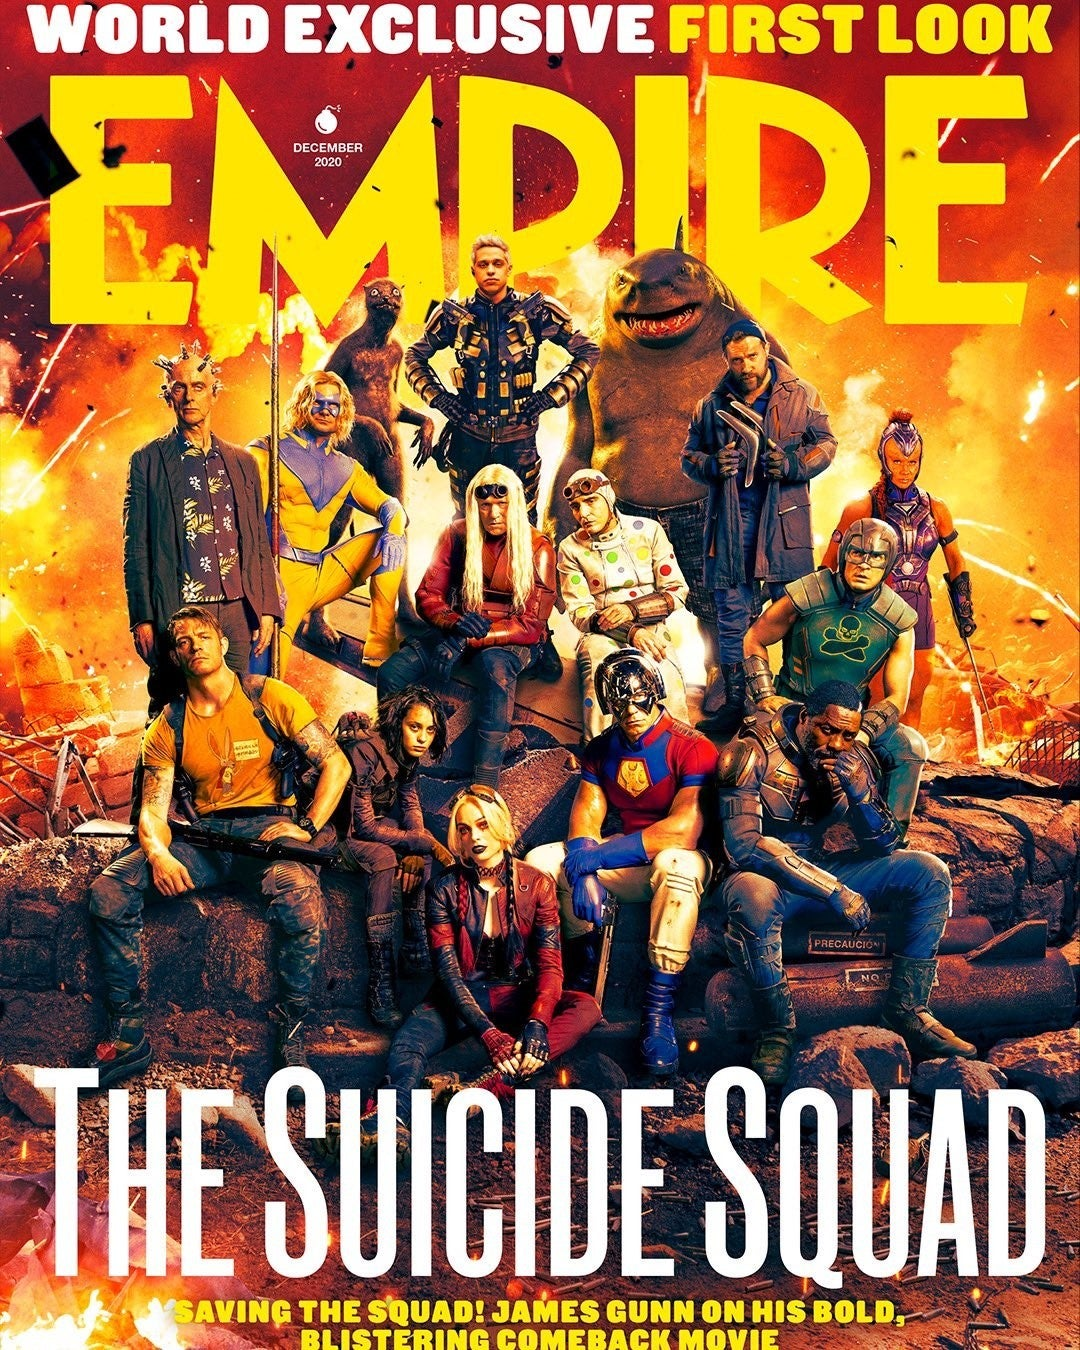 The Suicide Squad Magazine Covers Reveal Characters and Costumes